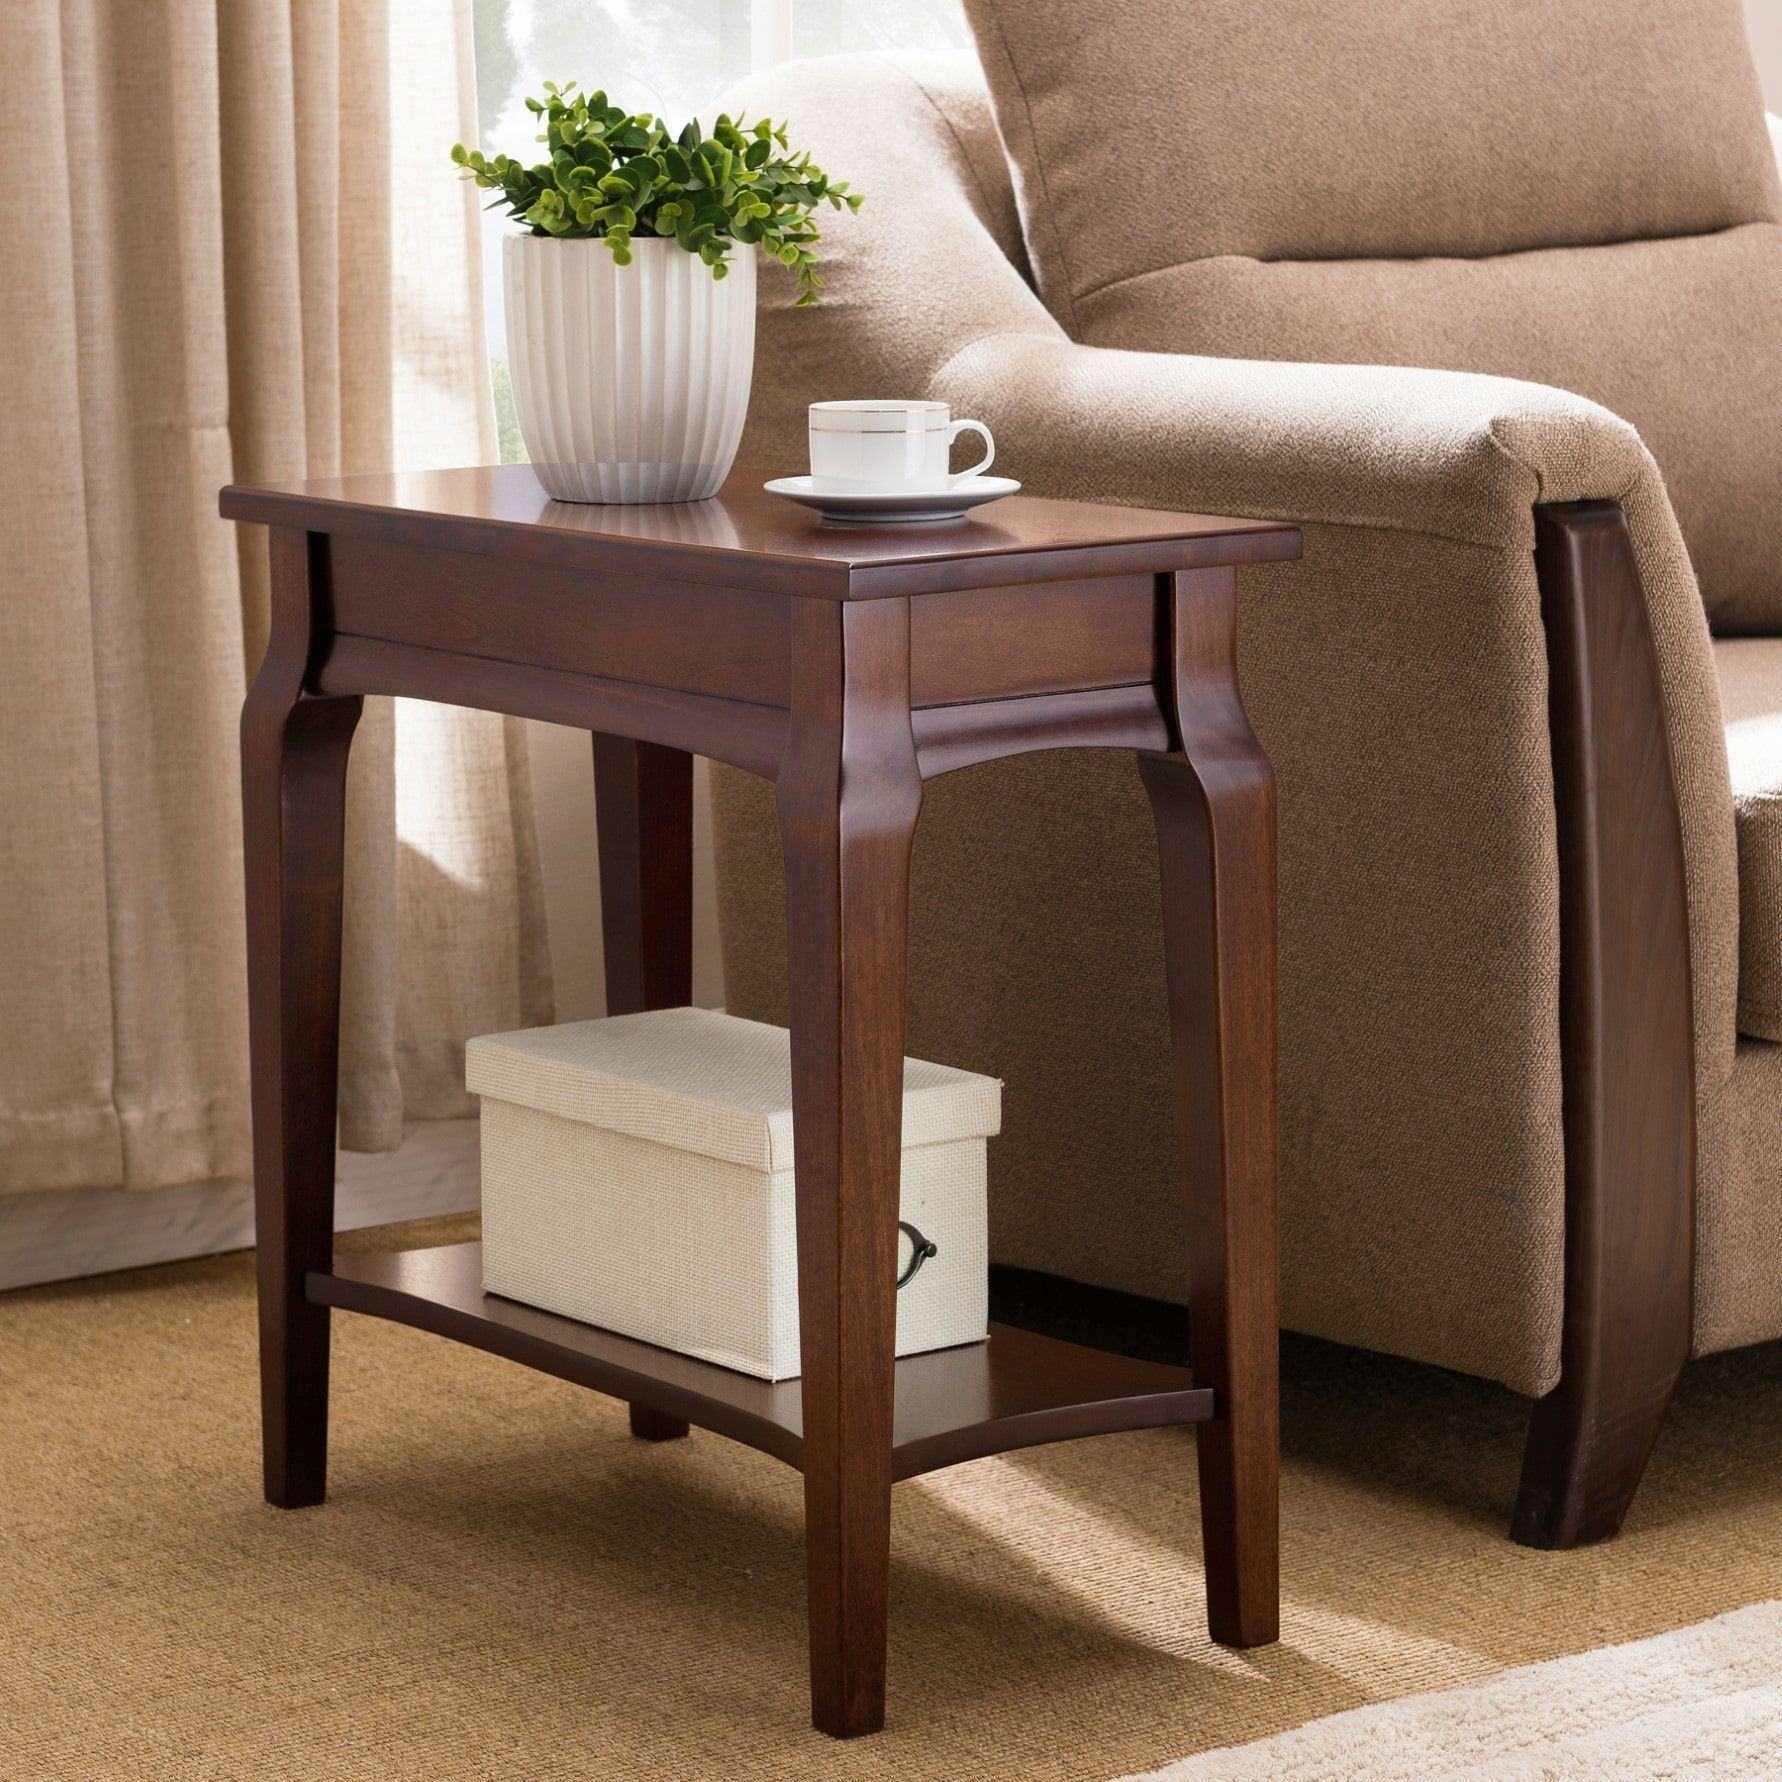 narrow chairside table with drawers furniture kd furnishings cherryfinish narrow chairside table wood table brown